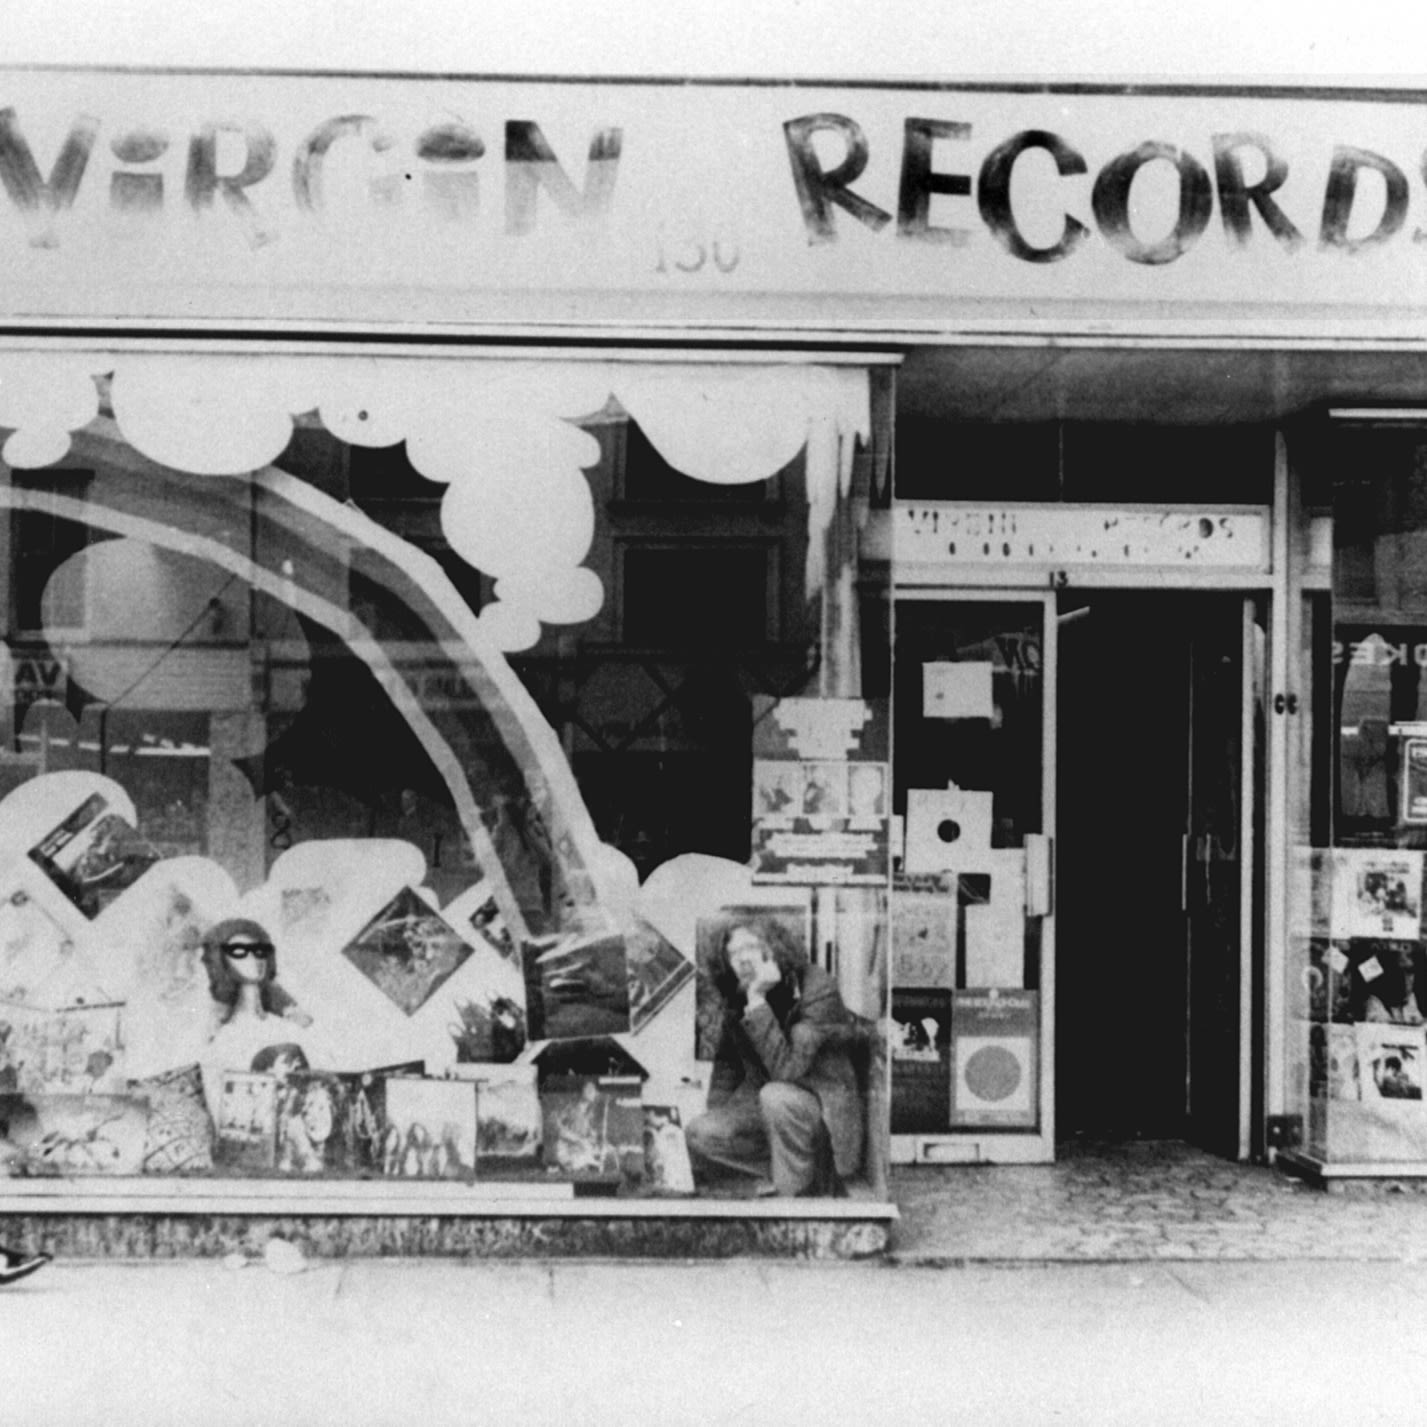 Shop front of Virgin Records years ago in black and white